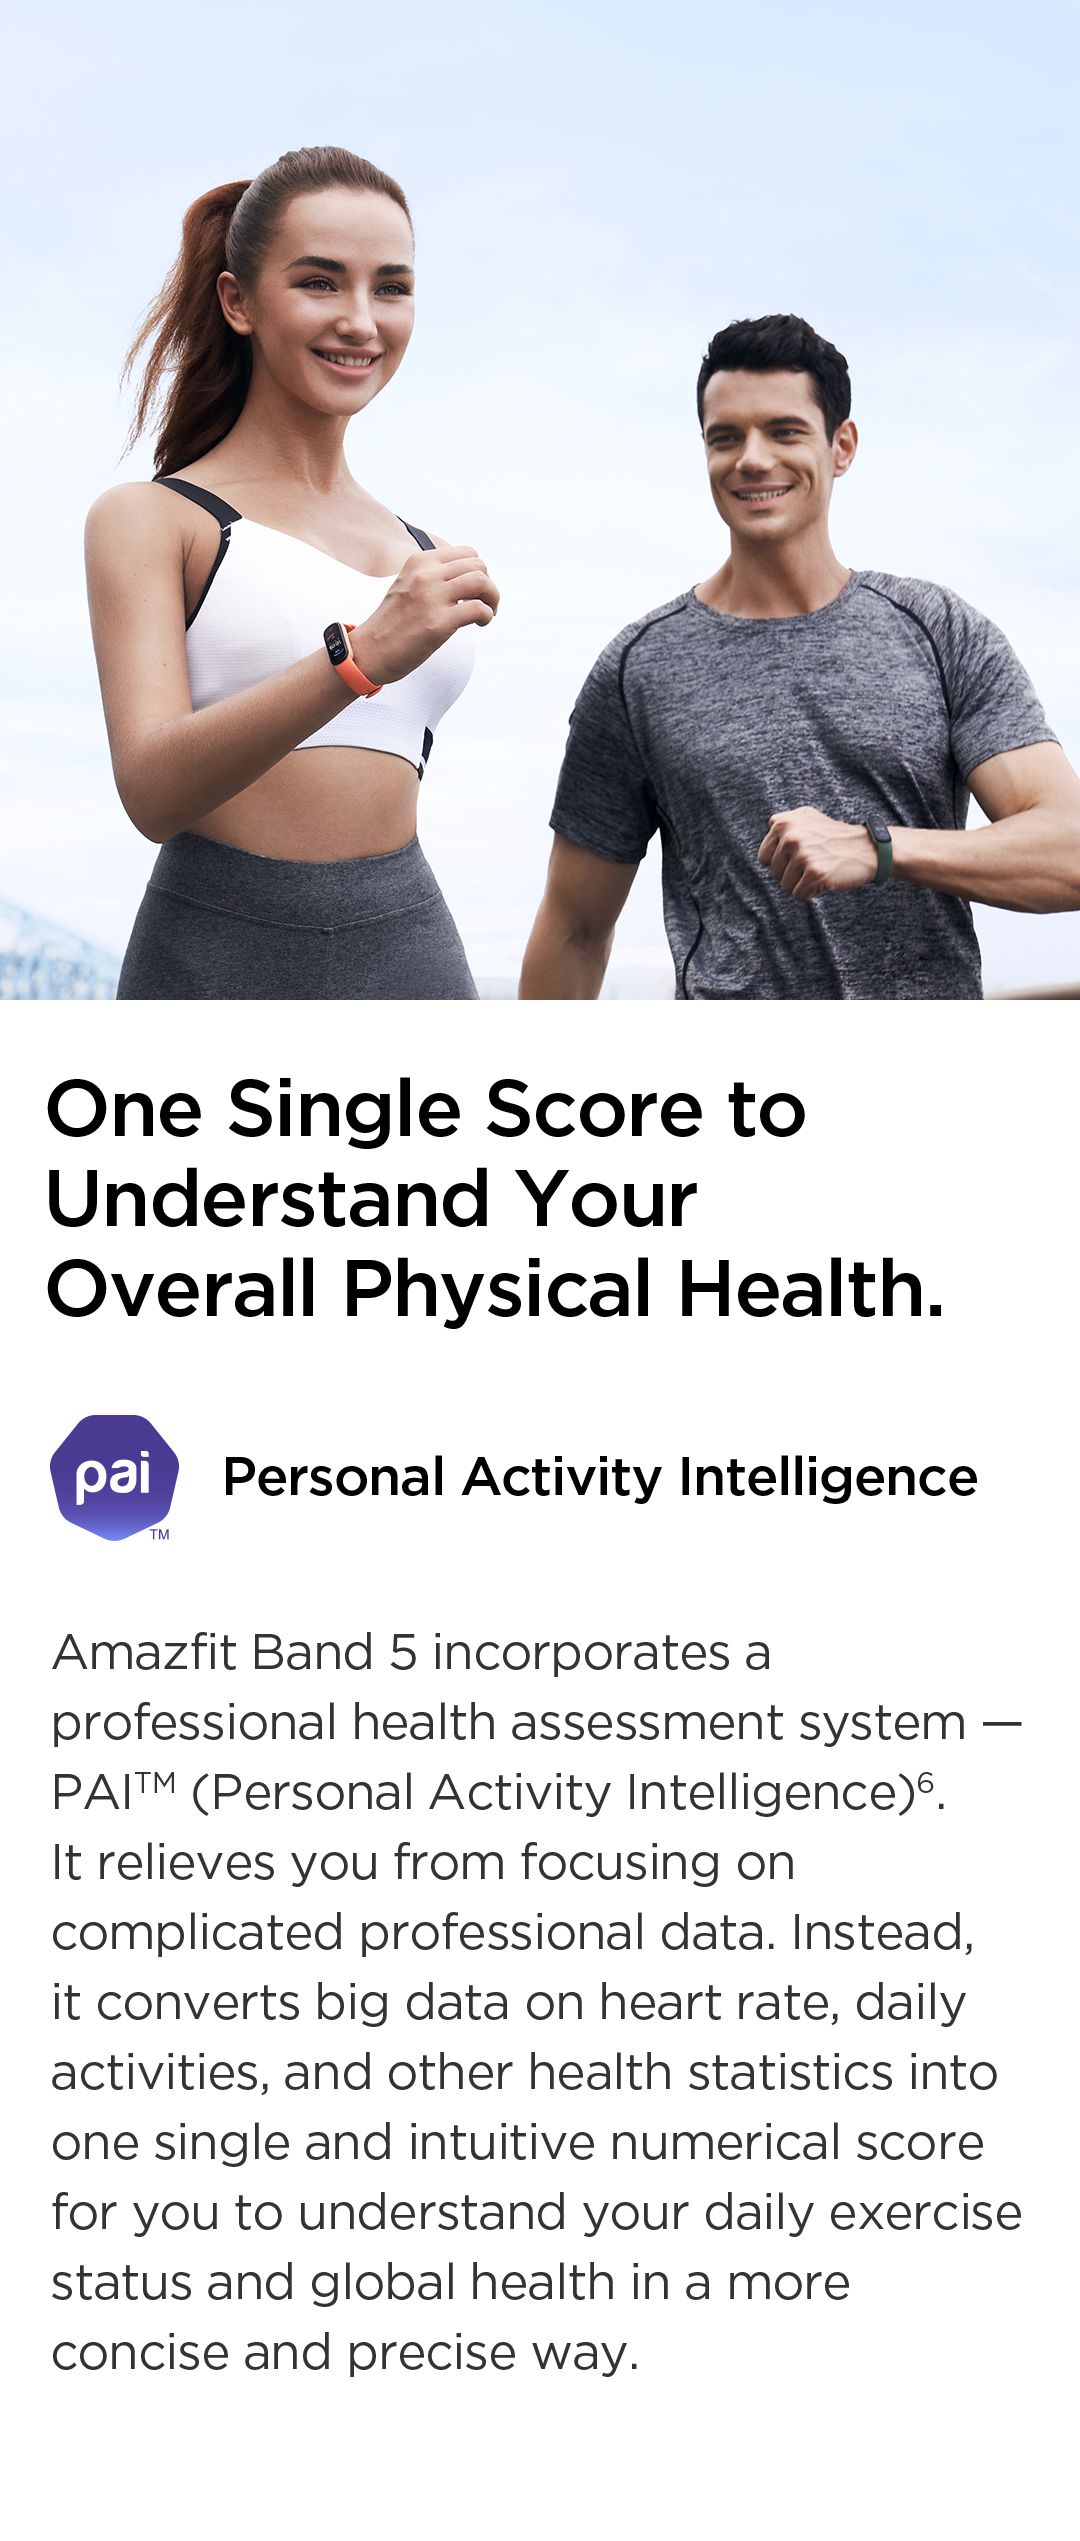 Amazfit Band 5 PAI Health Monitoring